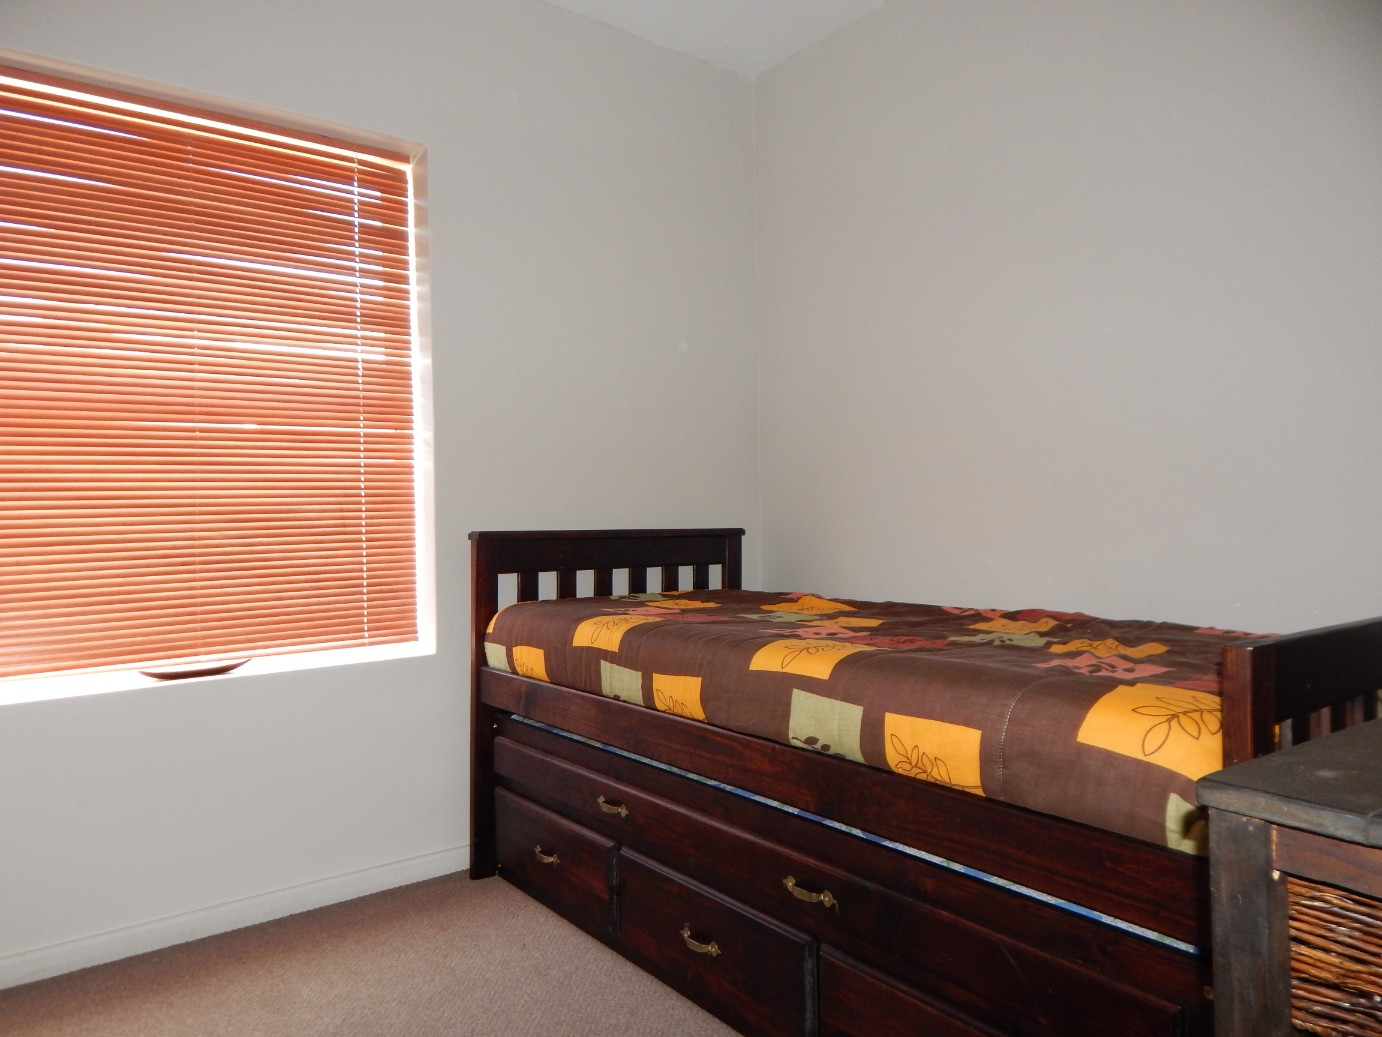 3 Bedroom Apartment for sale in Diaz Beach ENT0080239 : photo#16